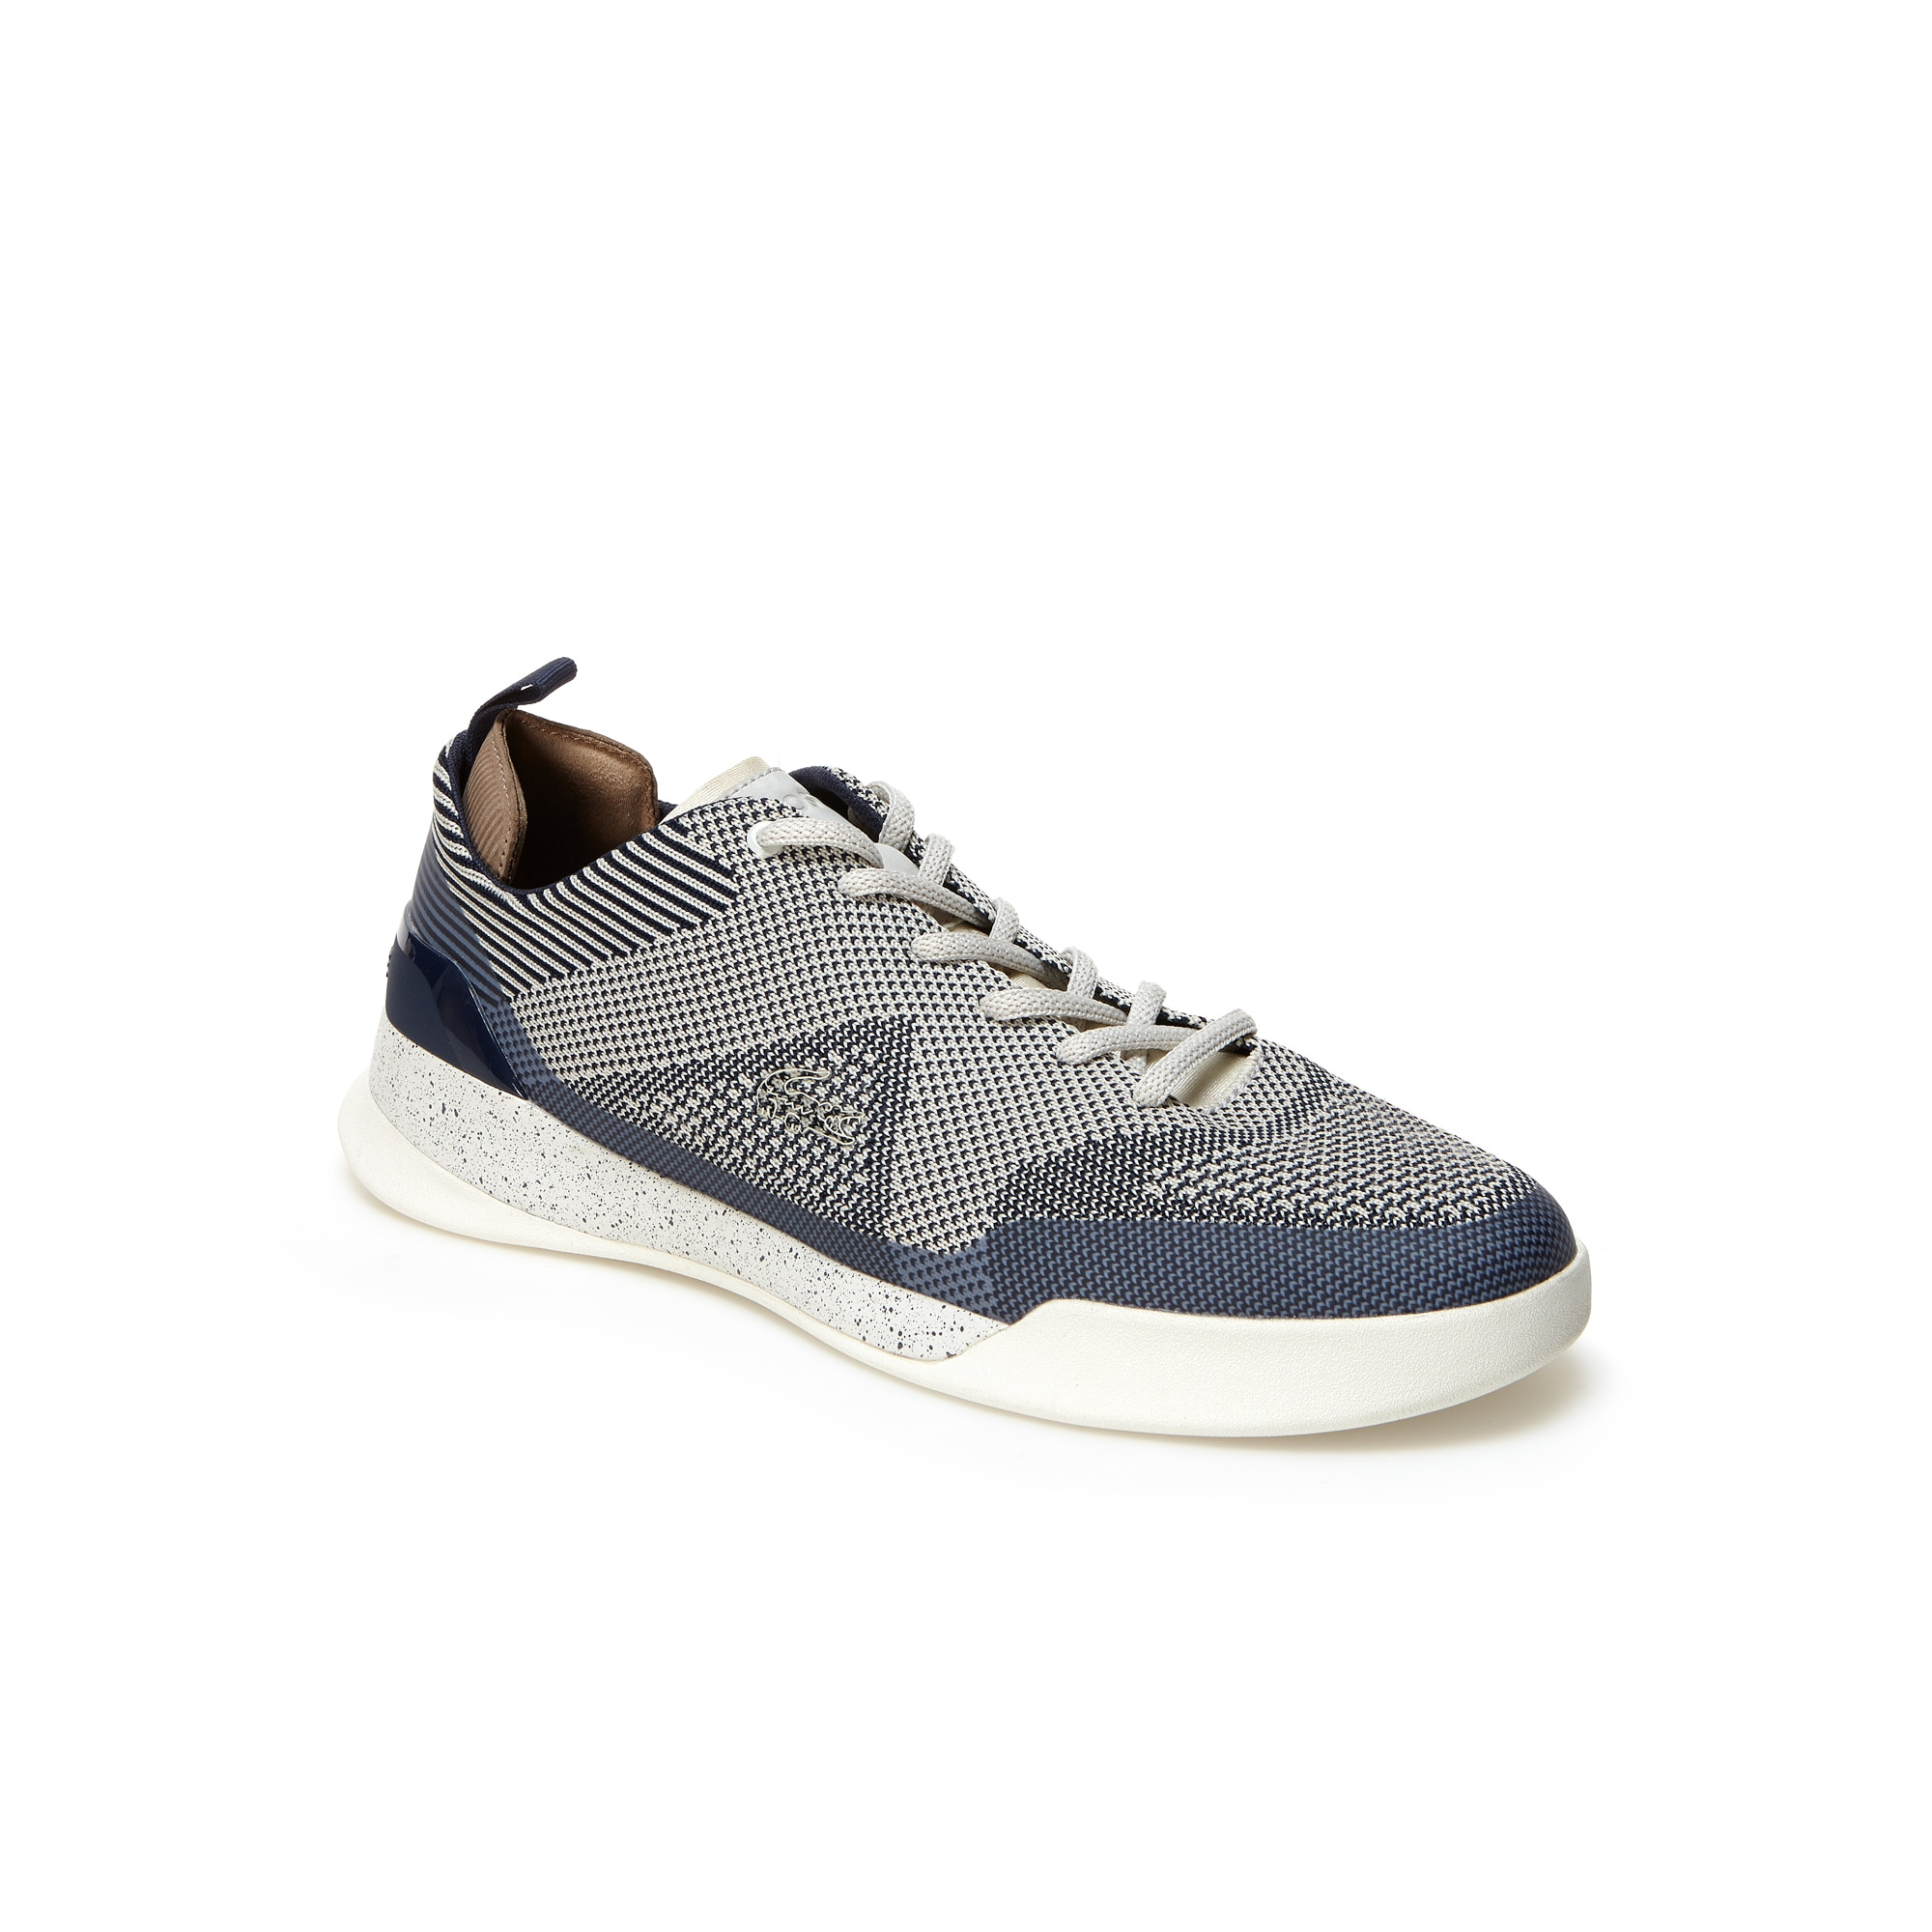 Men's LT Dual Elite Textile Sneakers